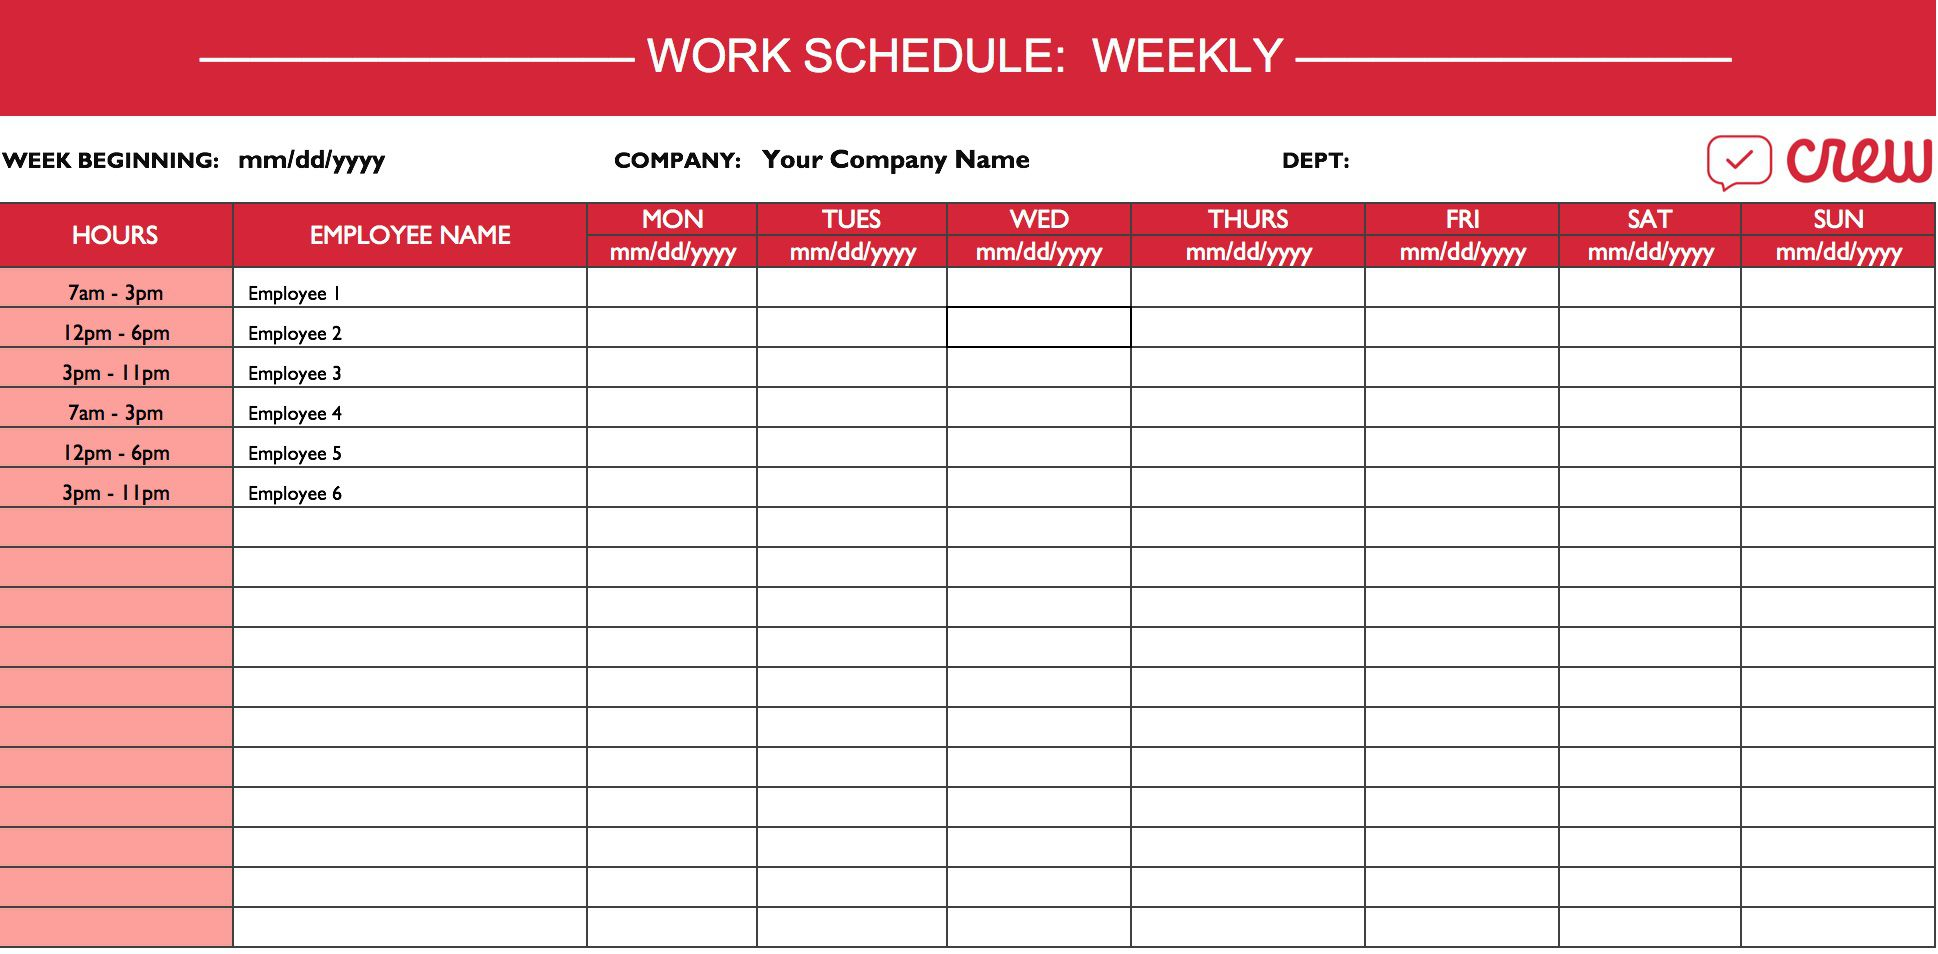 008 Amazing Weekly Work Schedule Template Highest Quality  Monthly Excel Free Download For Multiple Employee PlanFull